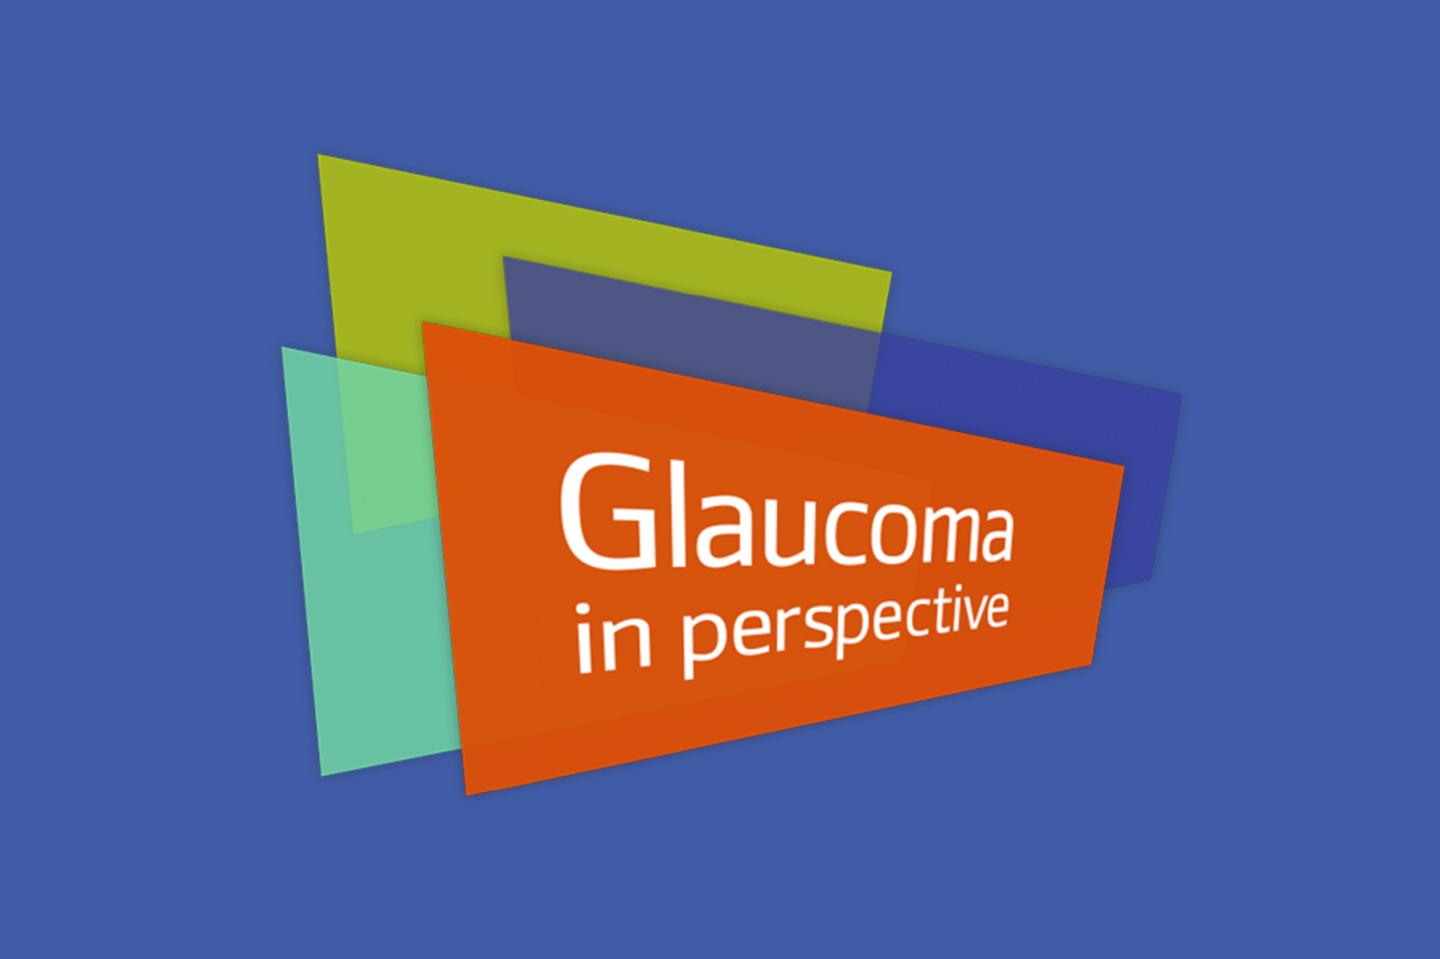 Glaucoma in Perspective logo